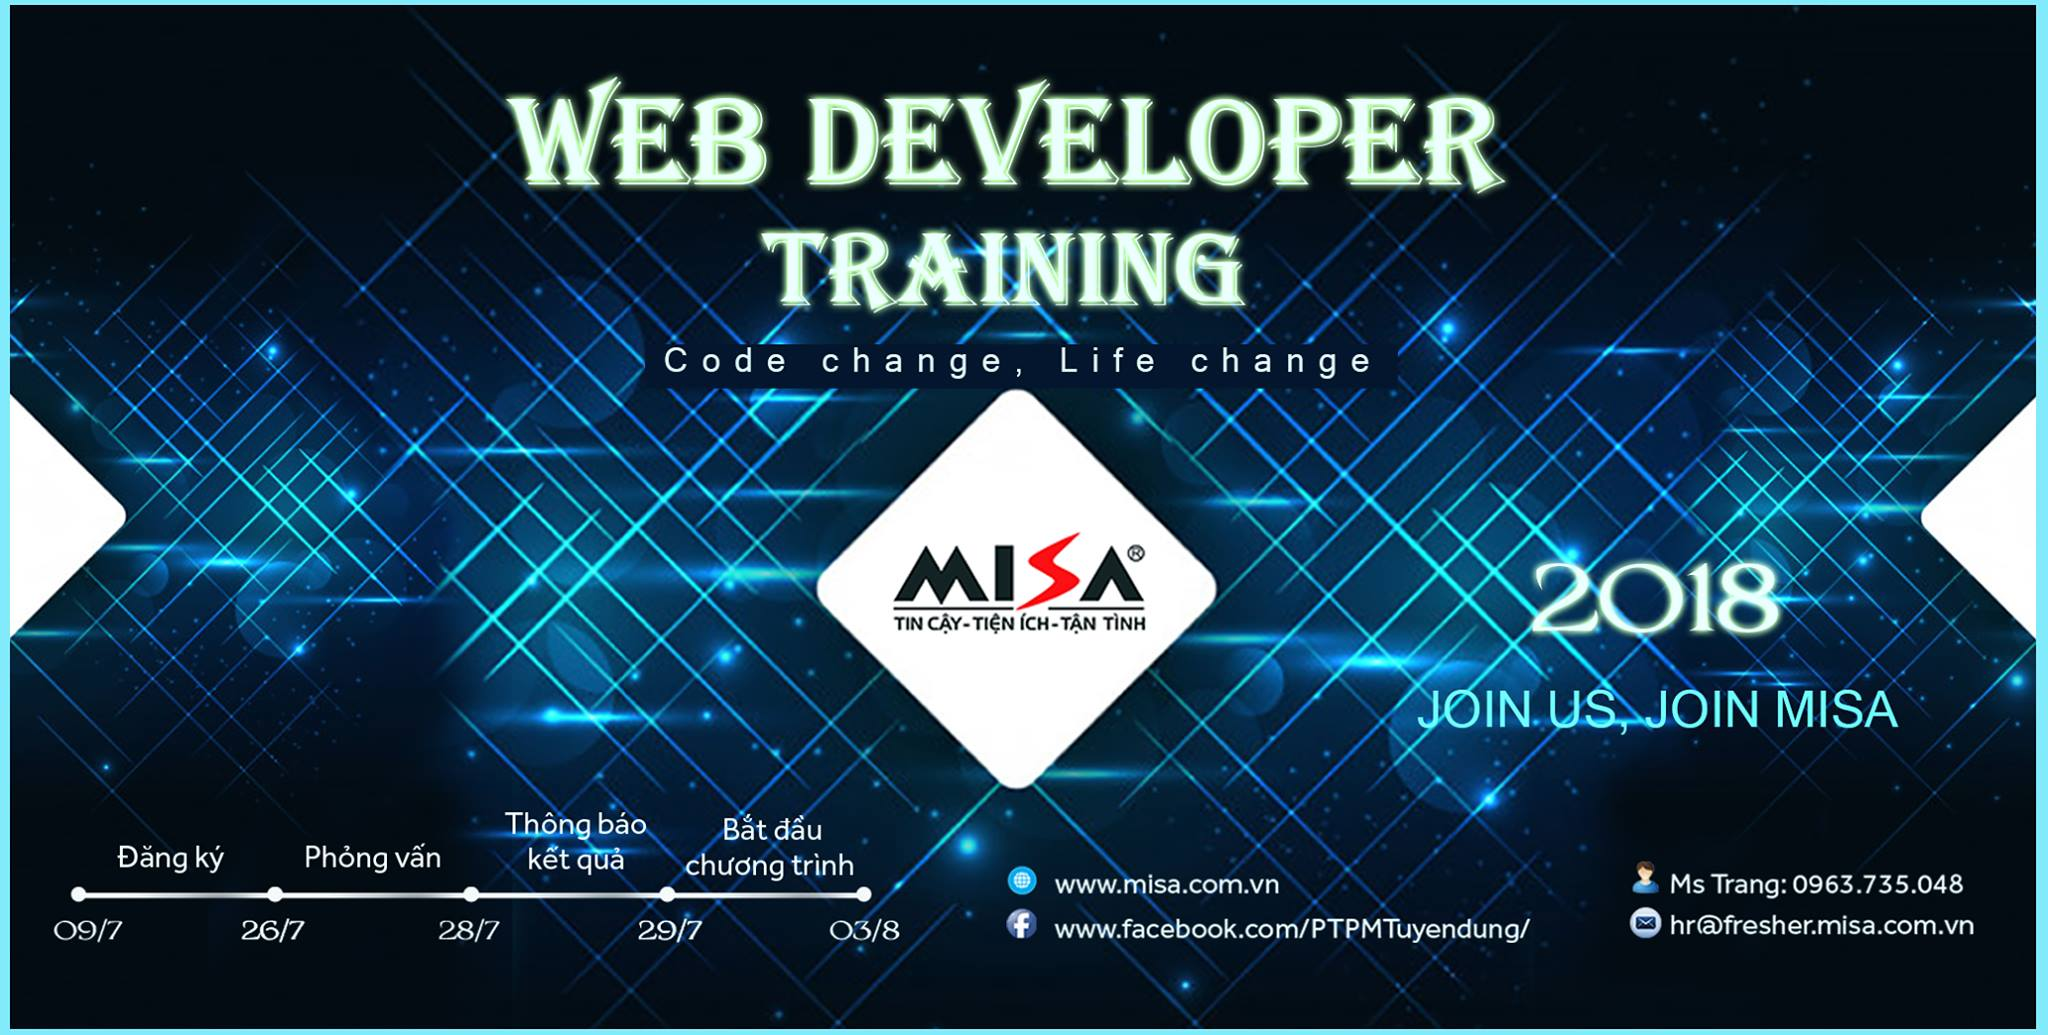 web developer training 2018